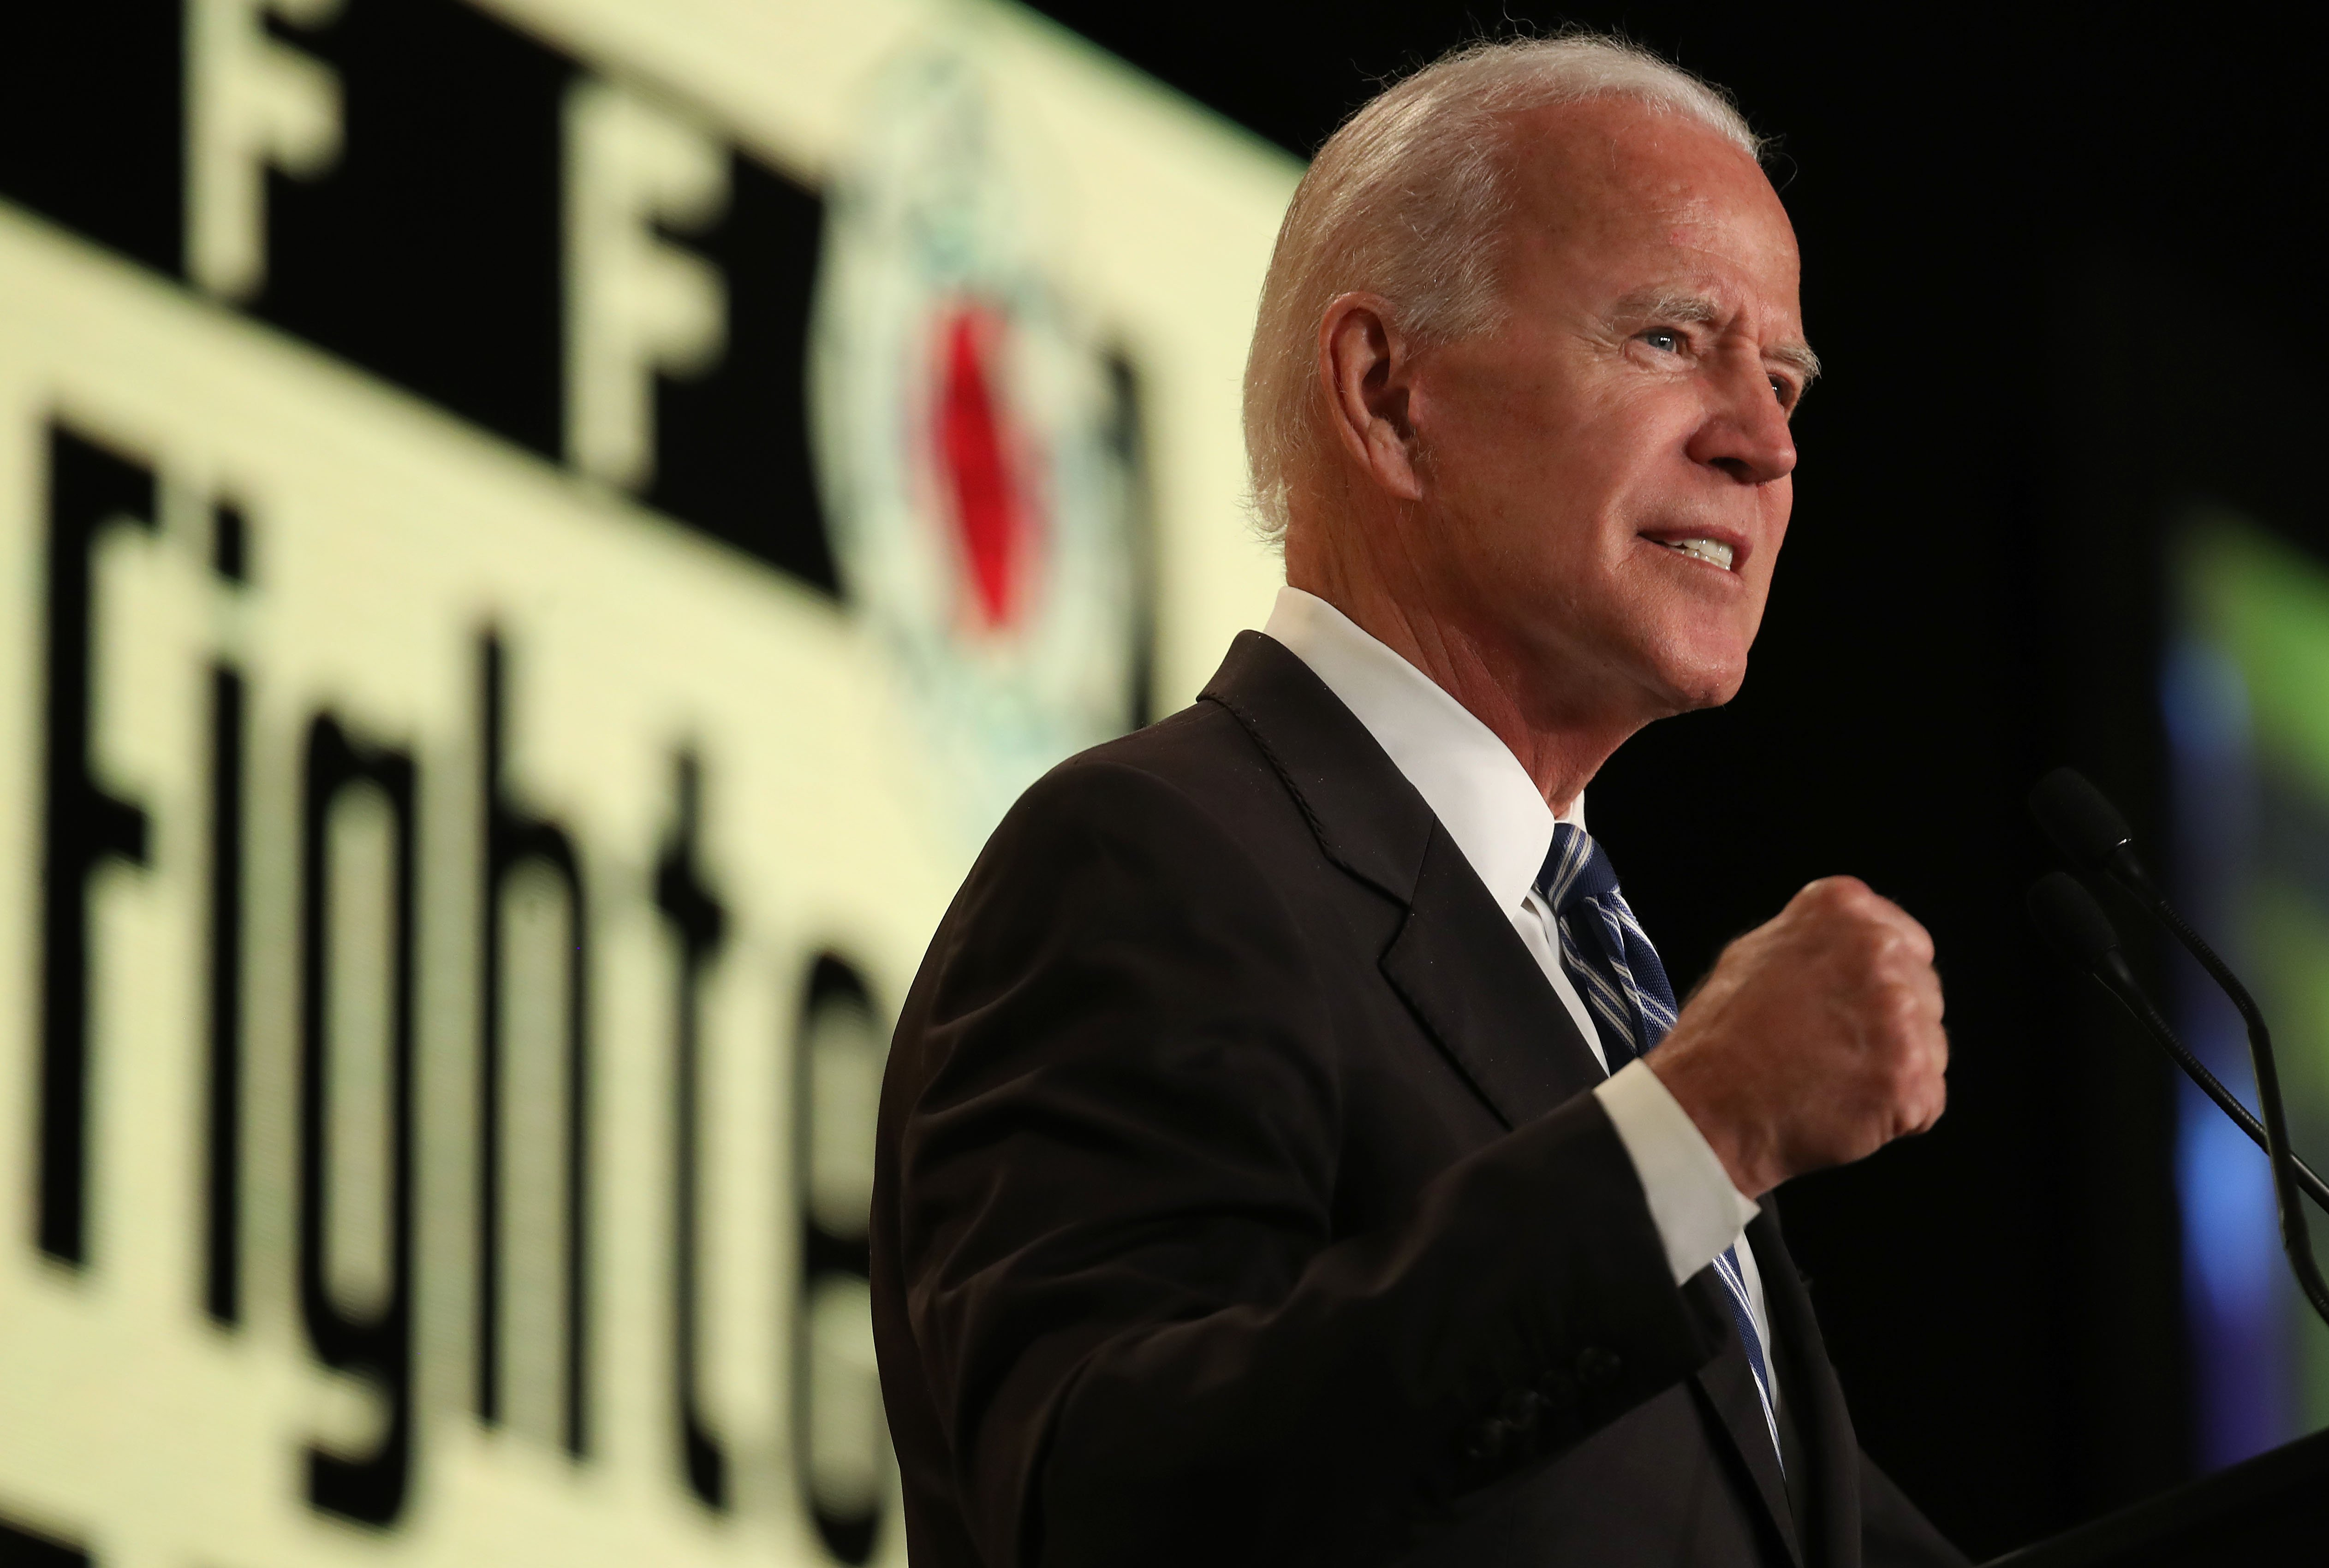 Former U.S. Vice president Joe Biden delivering a speech at the International Association of Fire Fighters legislative conference in Washington D.C. | Photo: Getty Images